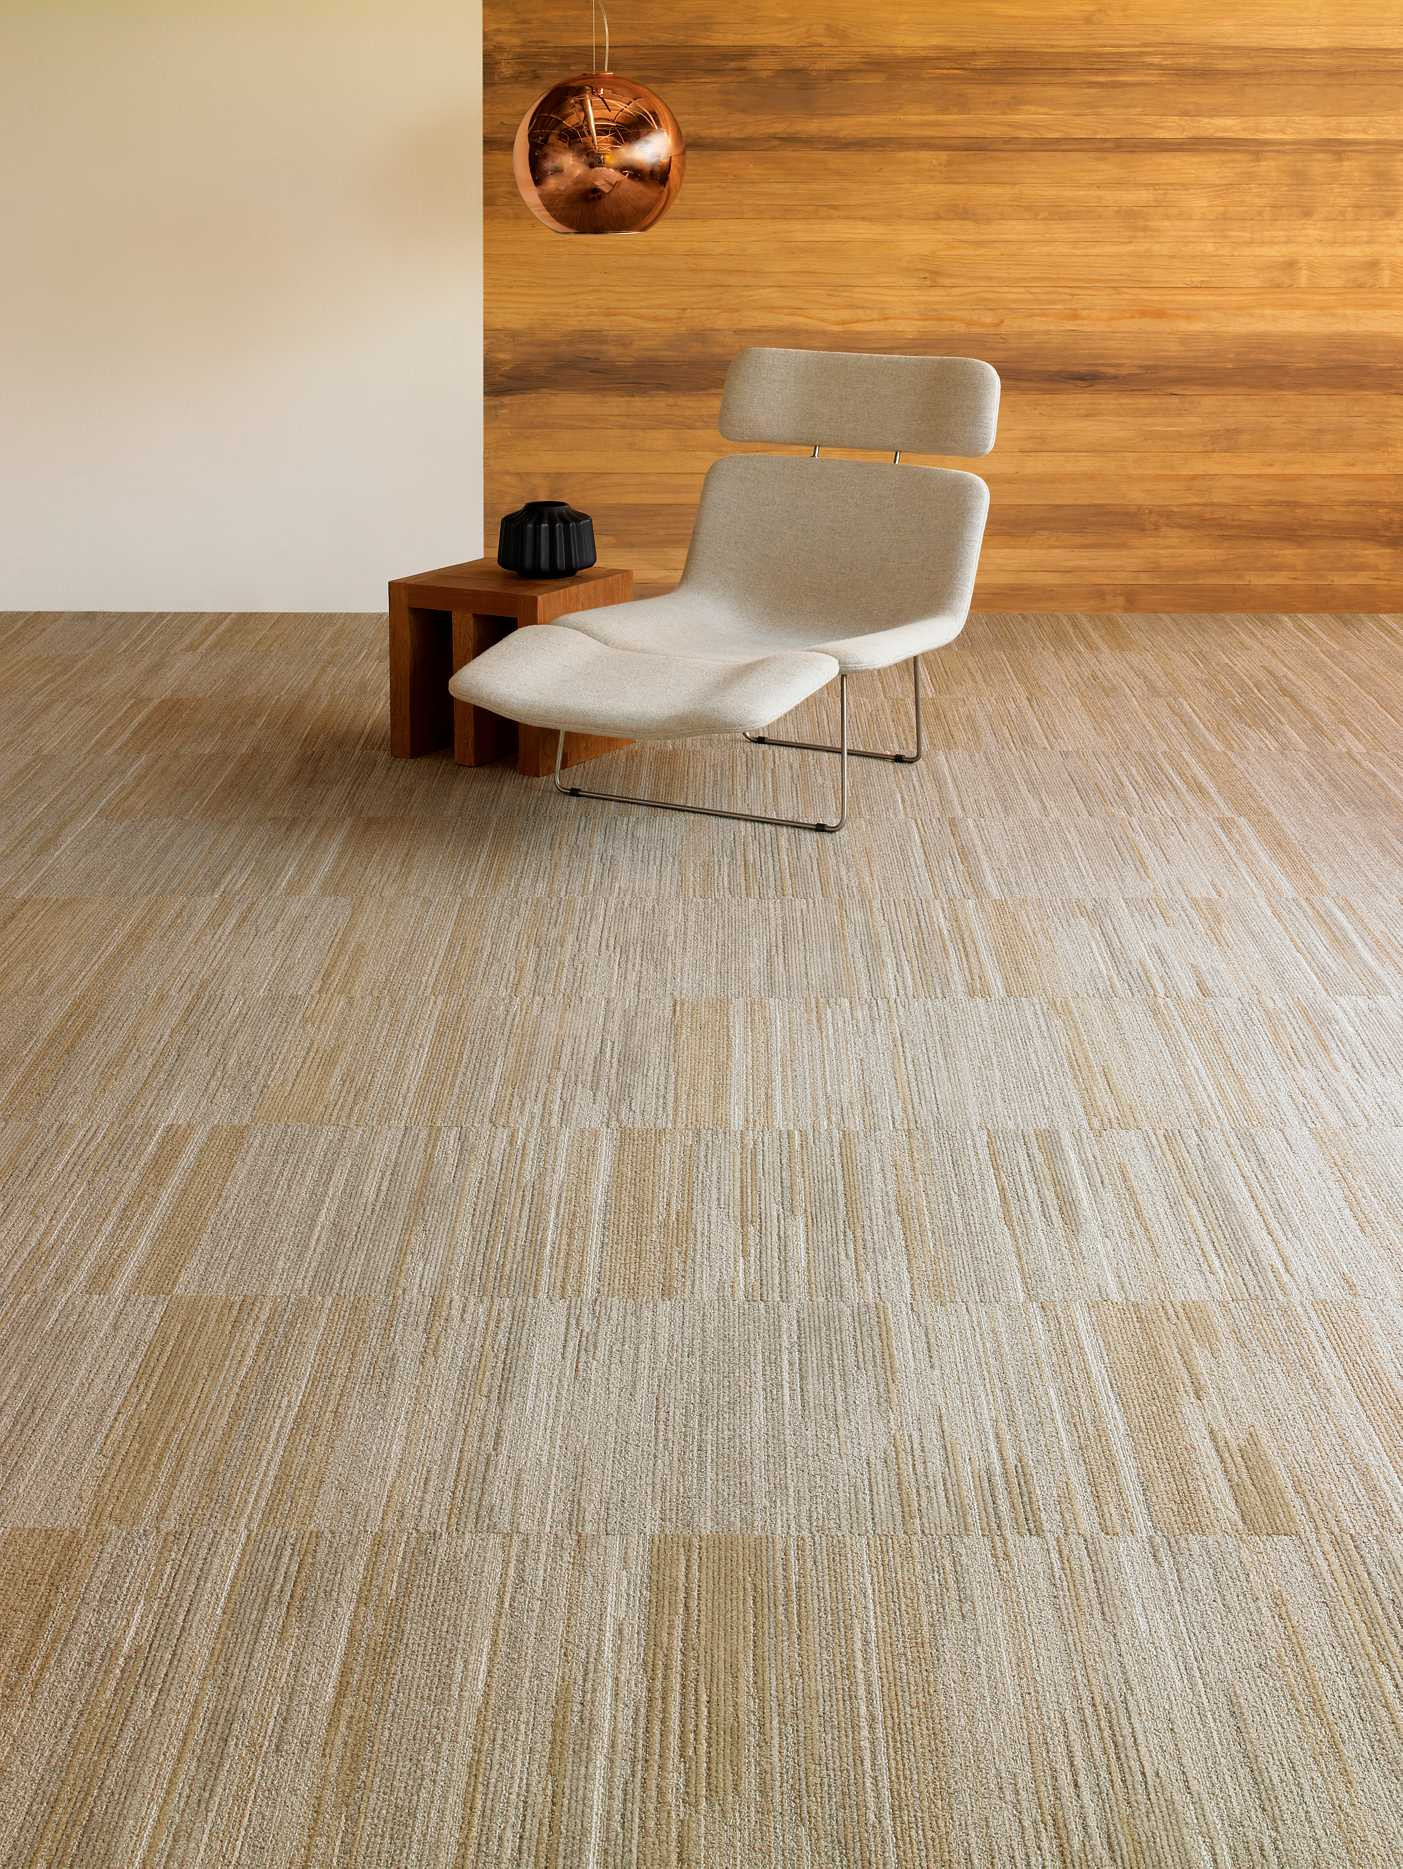 19 Wonderful Shaw Hardwood Flooring Canada 2021 free download shaw hardwood flooring canada of ingrain tile 59339 shaw contract shaw hospitality in 59339